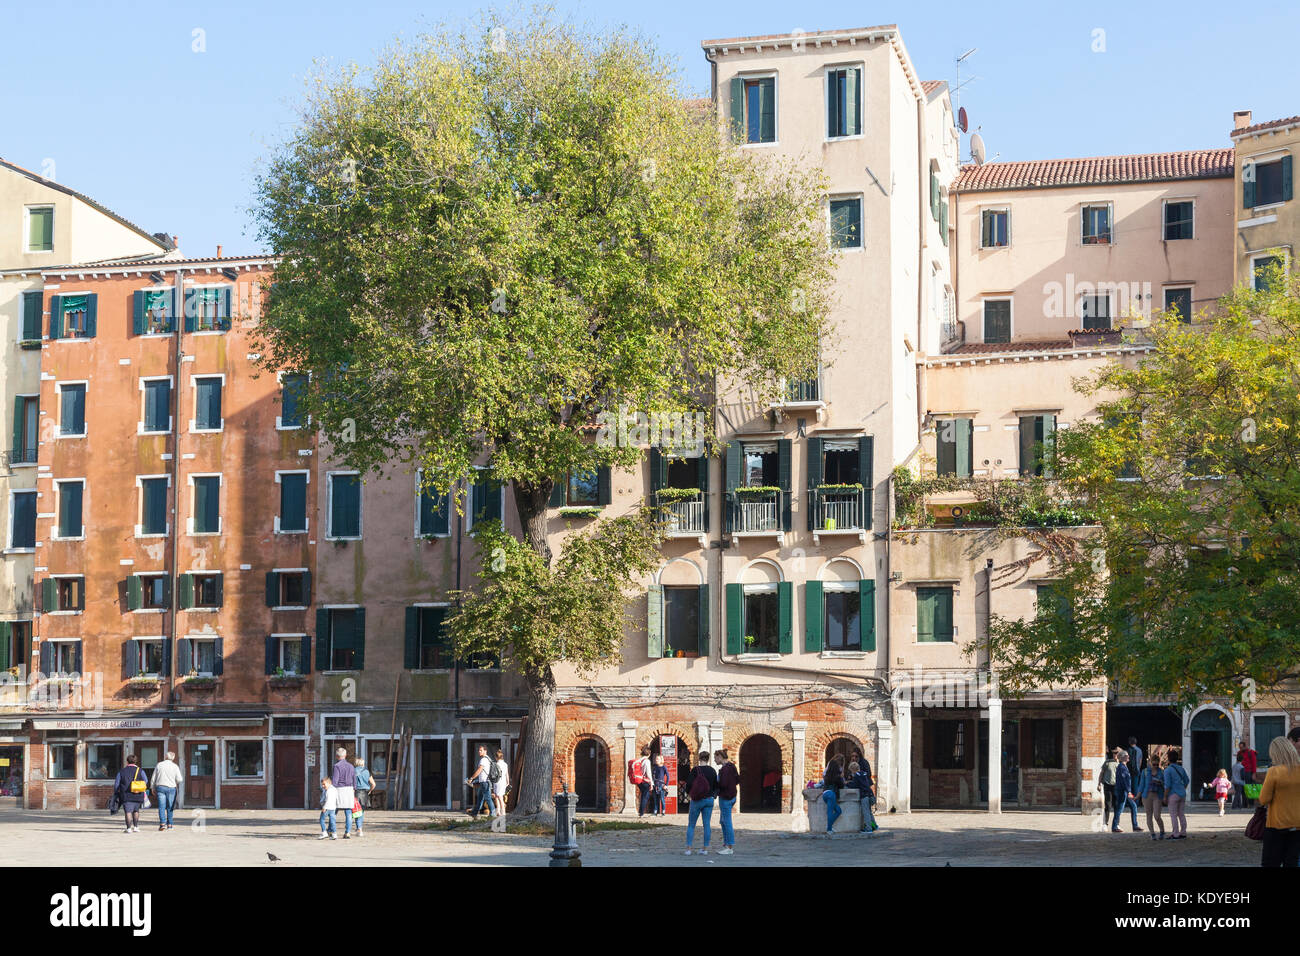 Tall colorful buildings in Campo Gheto Novo, Cannaregio, Venice, Italy built many stories high as the Jews were - Stock Image